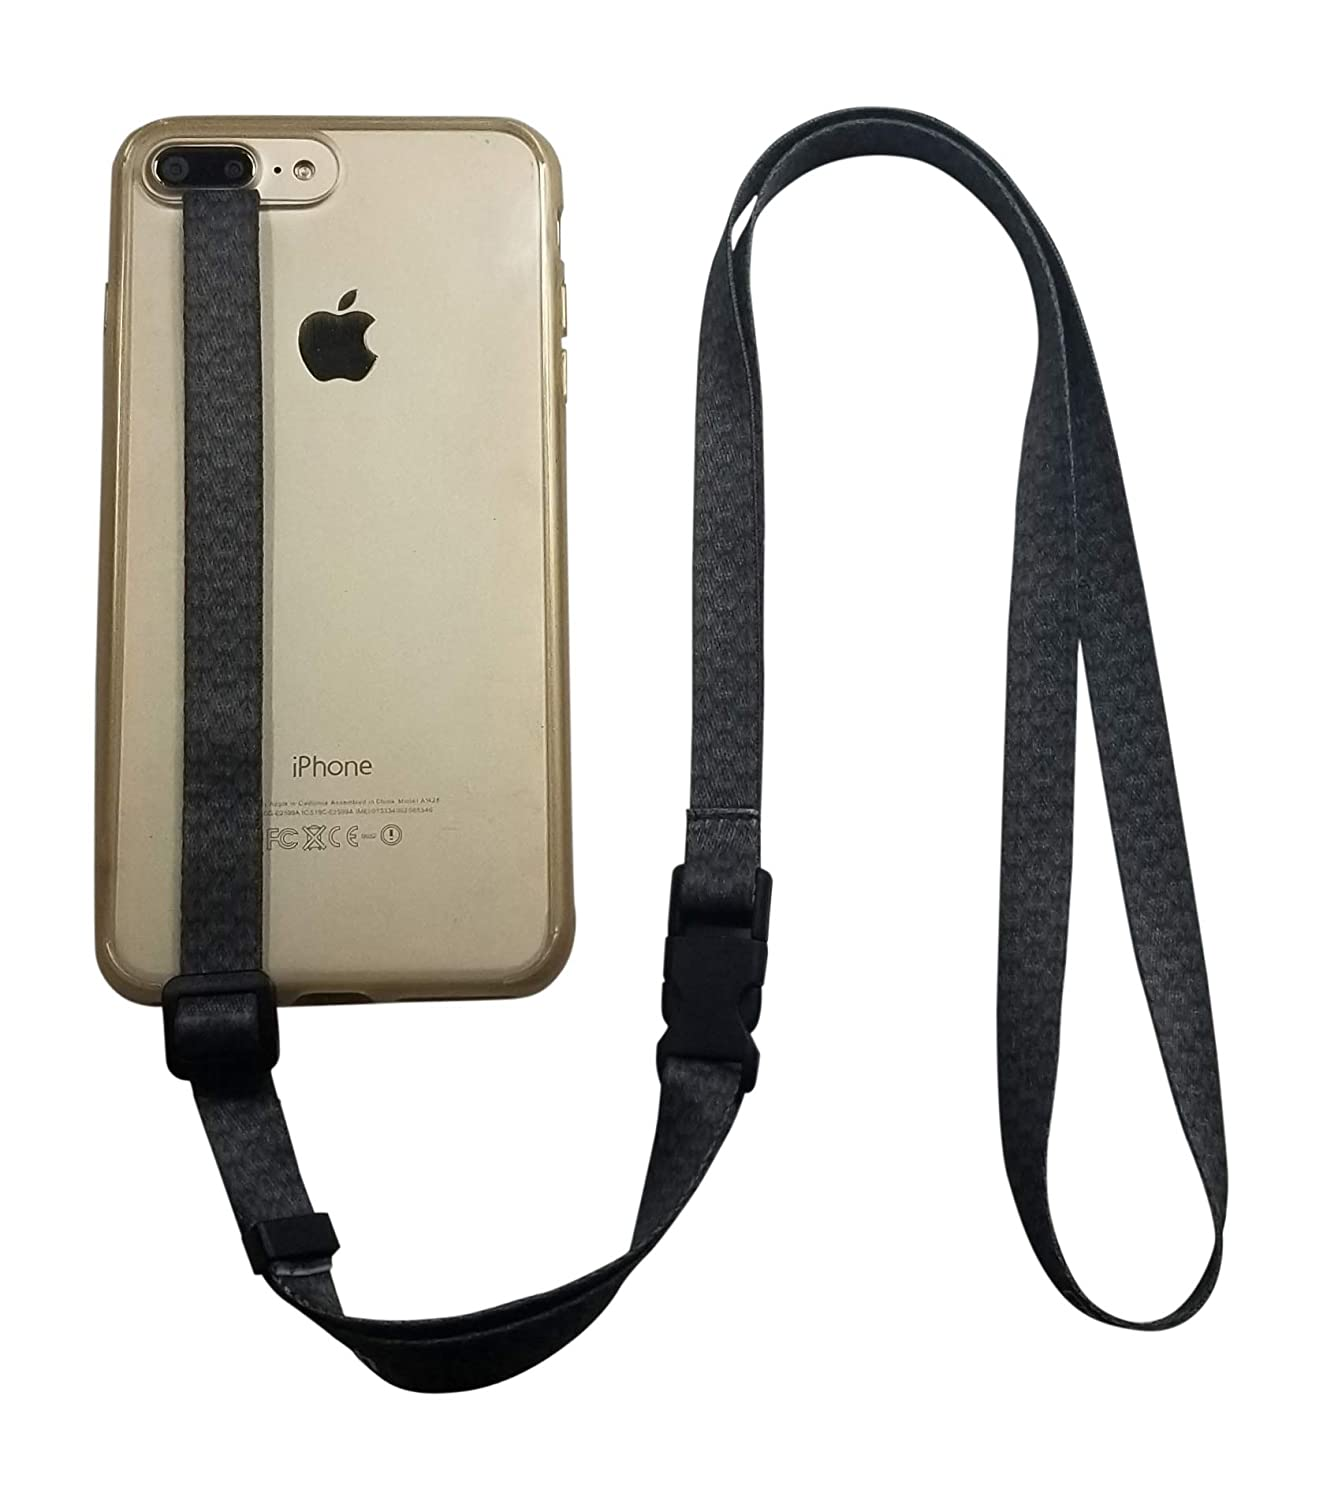 finest selection e64d2 17884 foneleash 3 in 1 Universal Cell Phone Lanyard Neck Wrist and Hand Strap  Tether (Spade)